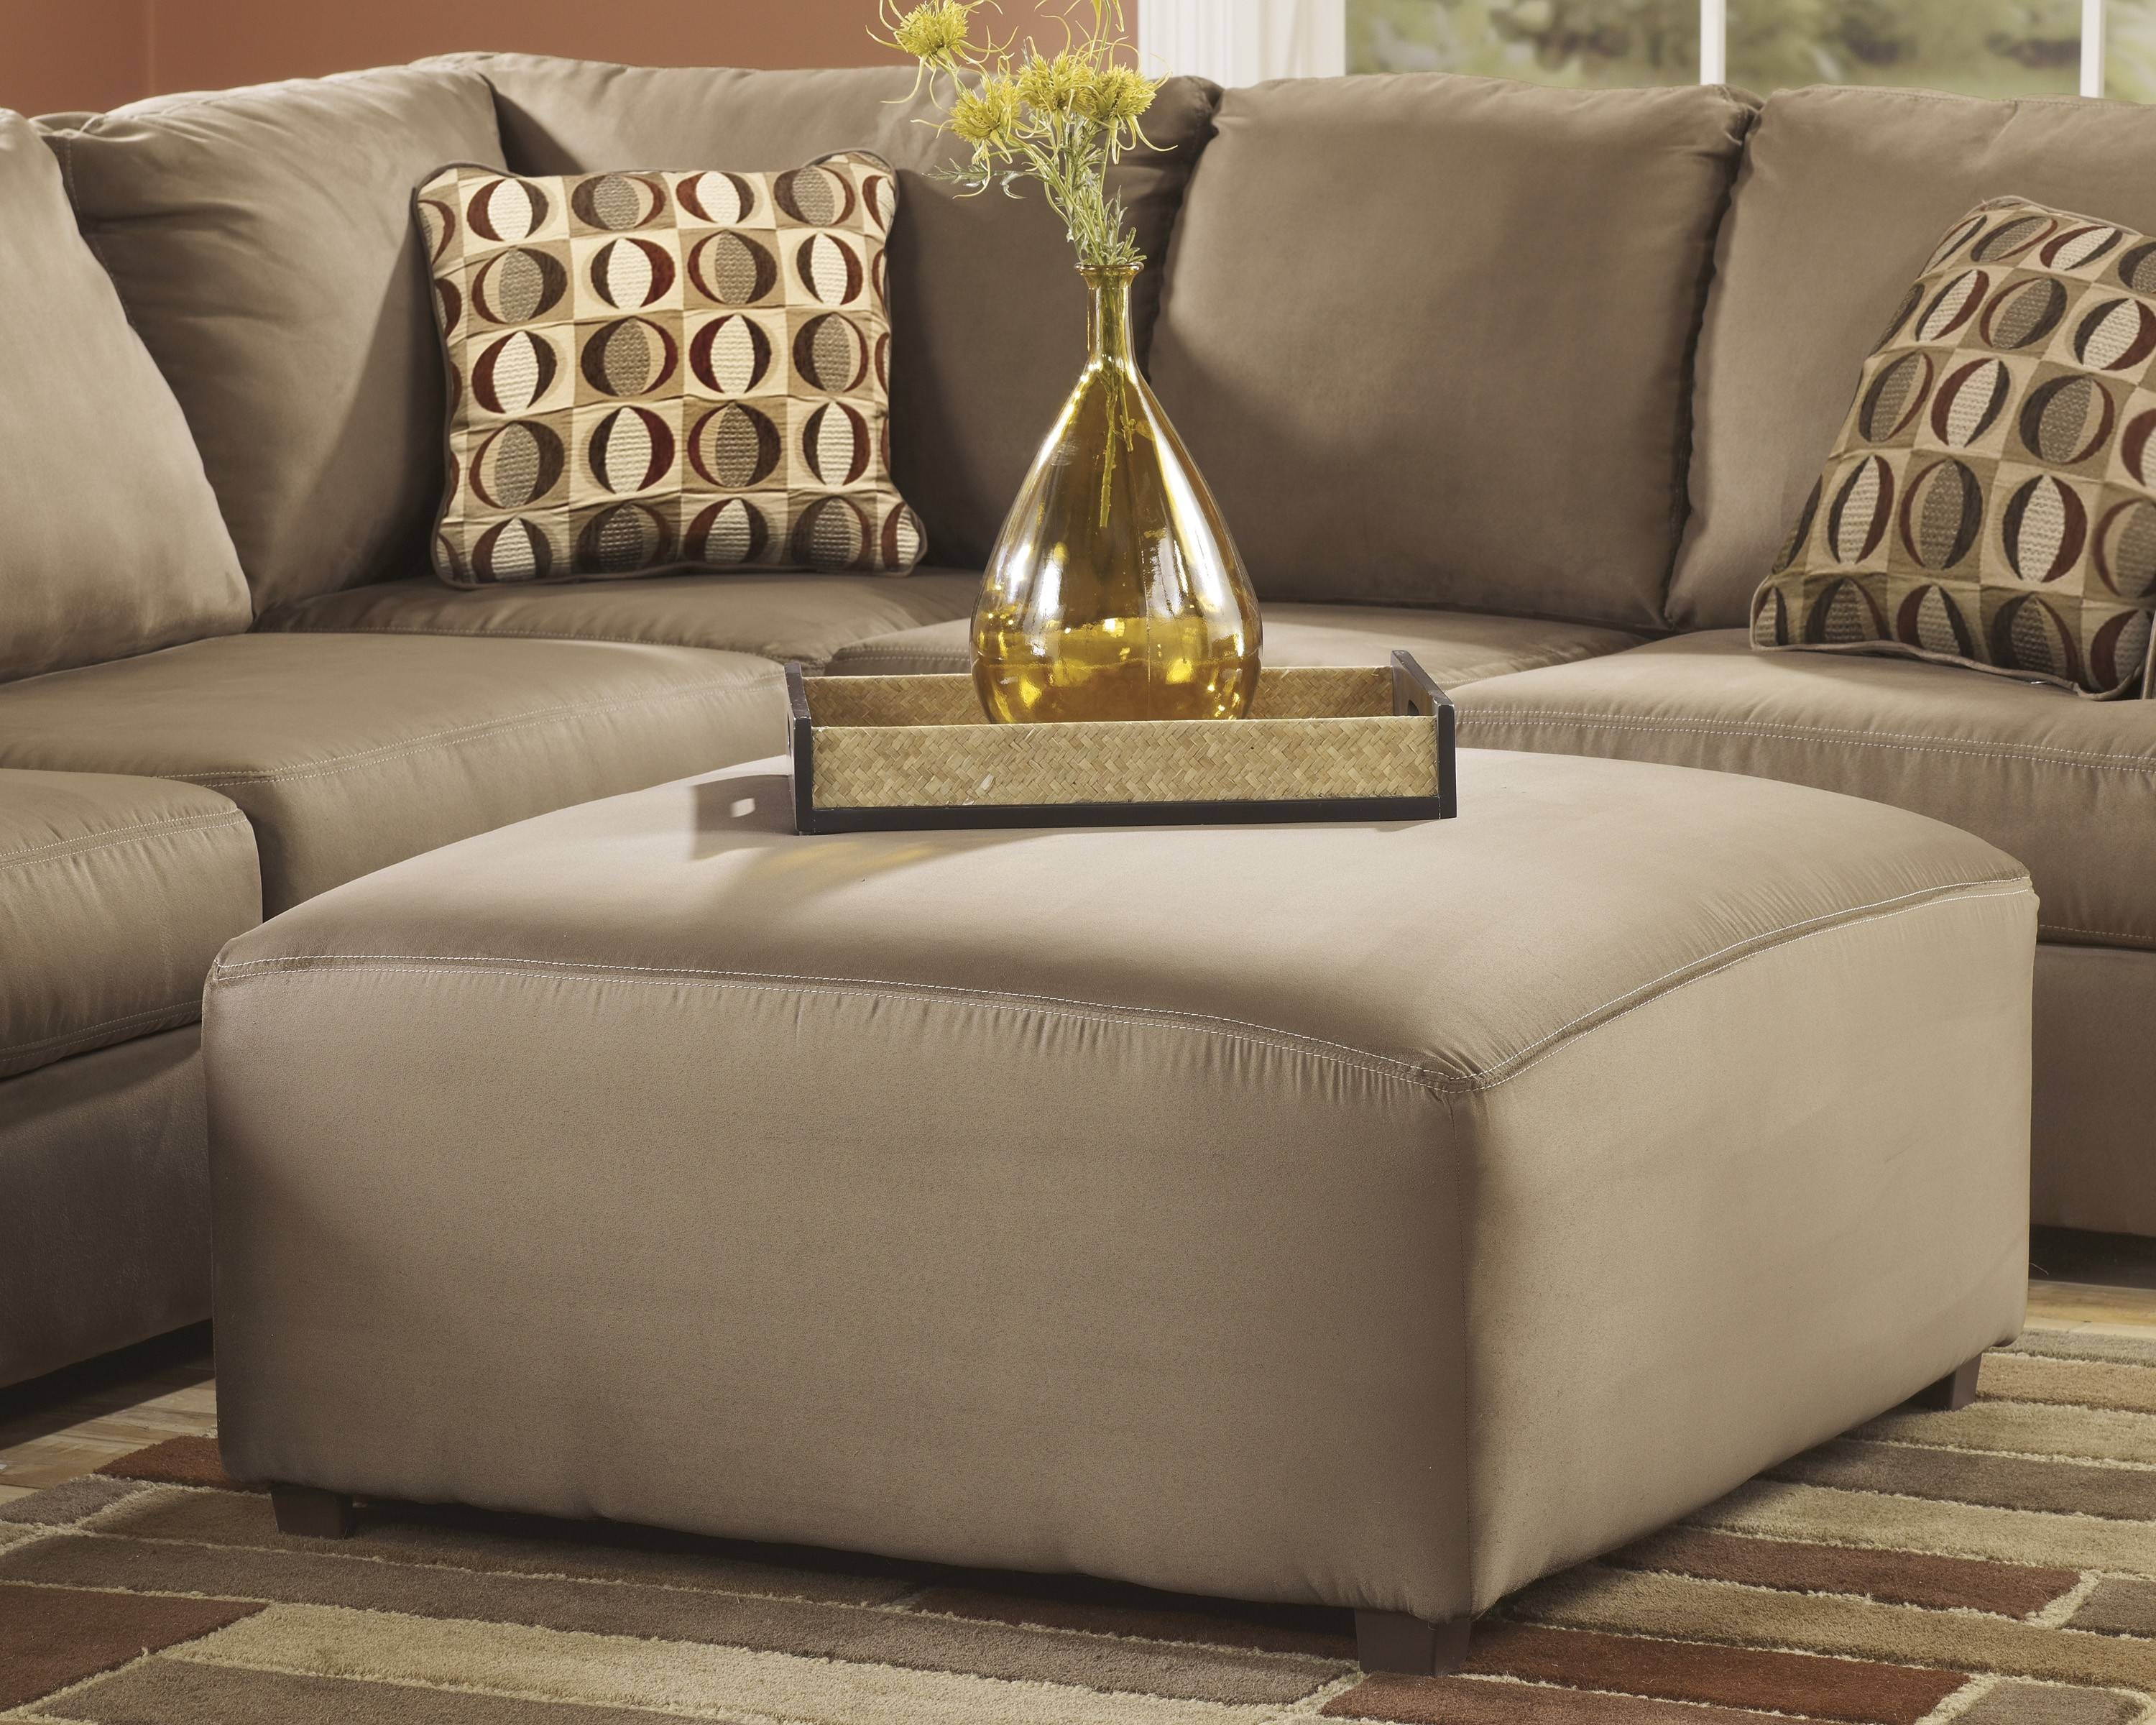 Oversized Couch Pillows. Oversized Couches Living Room Grey Walls throughout Oversized Sofa Pillows (Image 17 of 30)